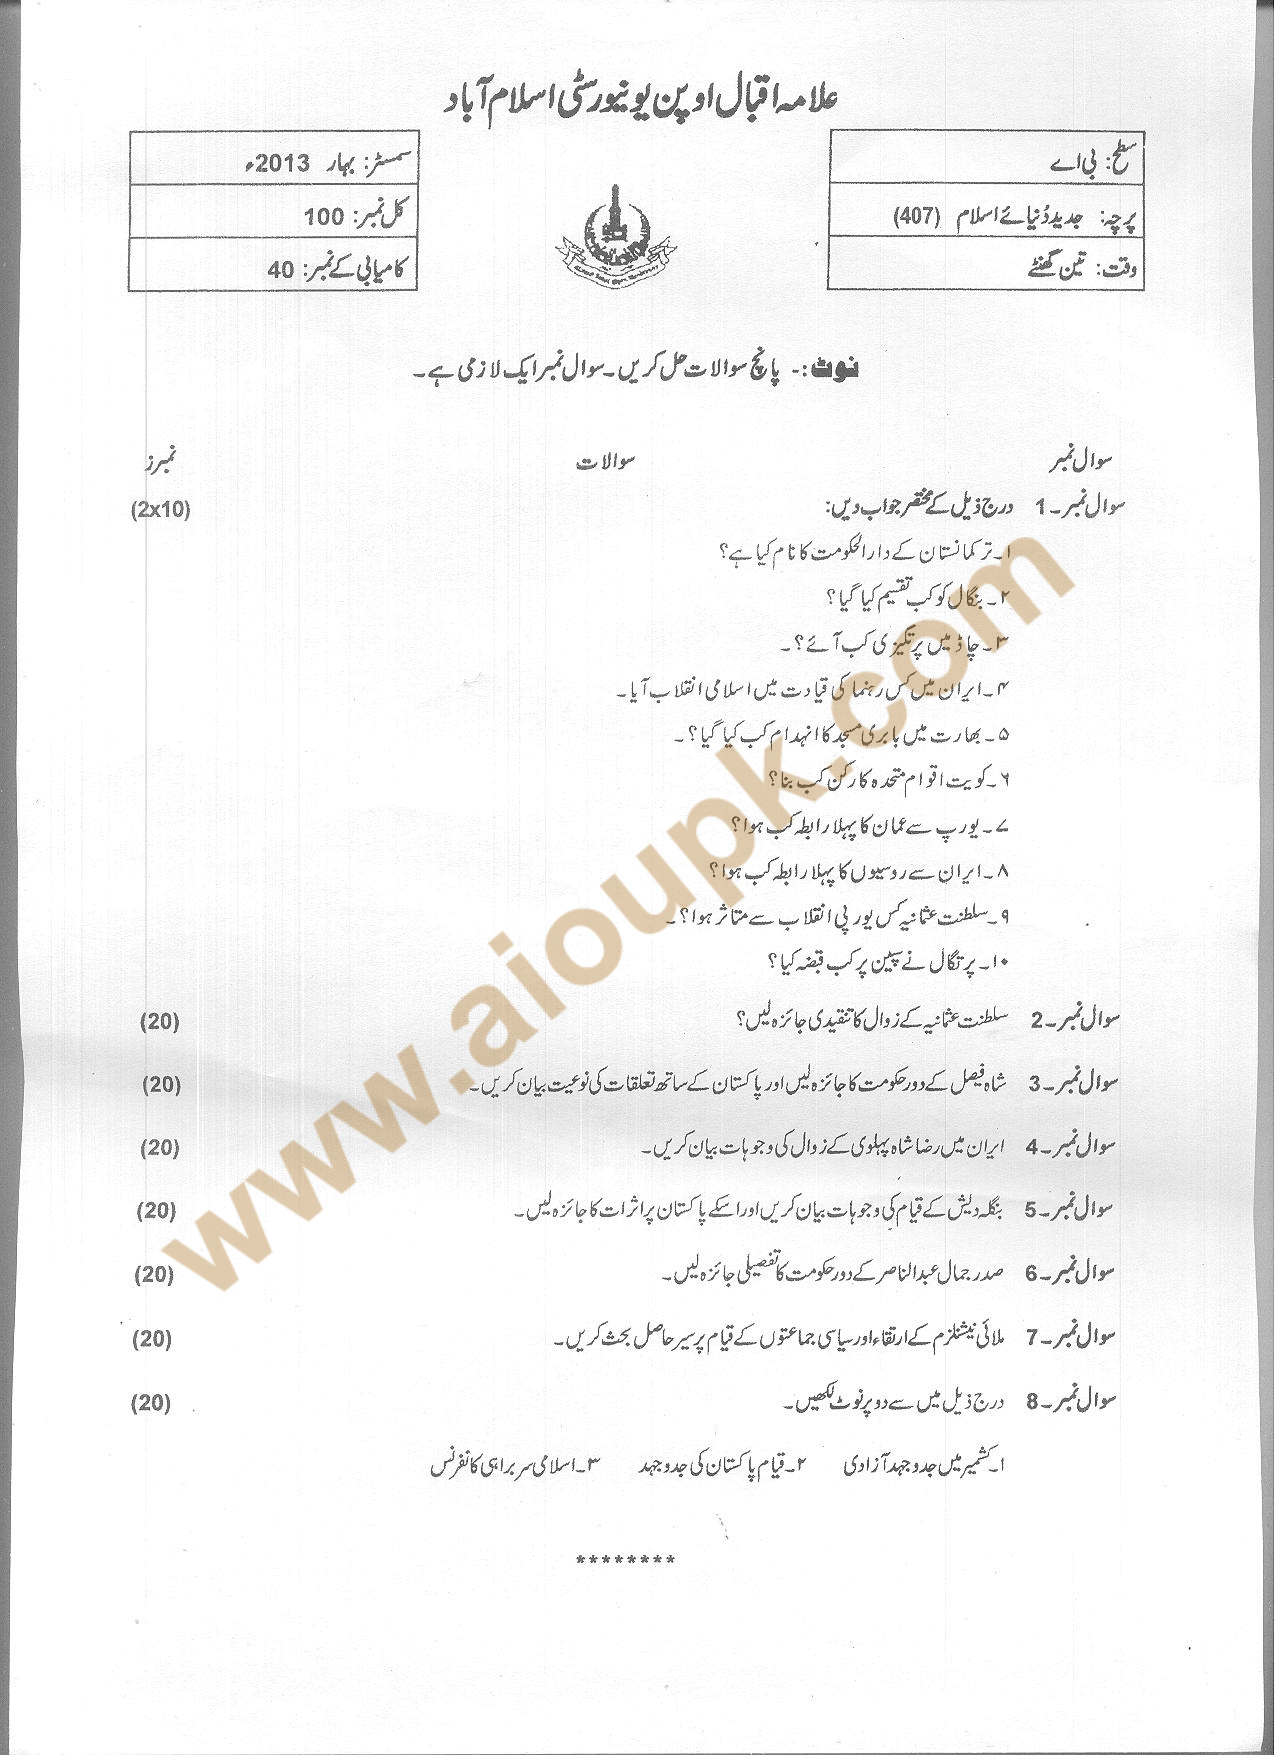 punjab university old question papers Most important question for ba bcom every year - duration: 10:19 roshni sab k liye 32,928 views · 10:19 past papers, uptodate papers, lahore board past papers, pu uptodate, css and pms past papers - duration: 0:45 ilmkidunya 26,045 views · 0:45 · ba english 4rth year paper pattern punjab.